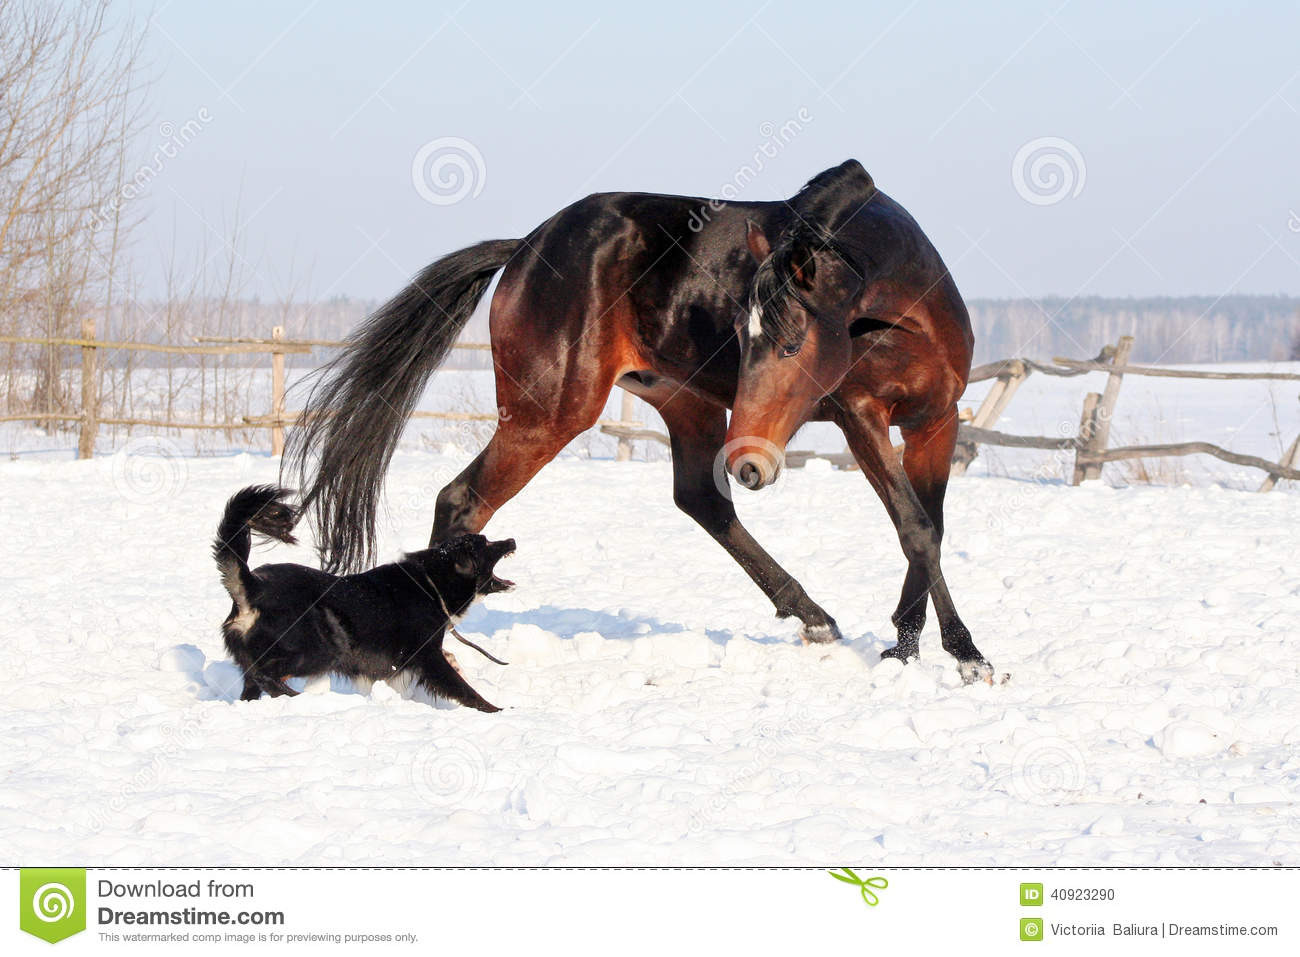 Horse playing with a dog